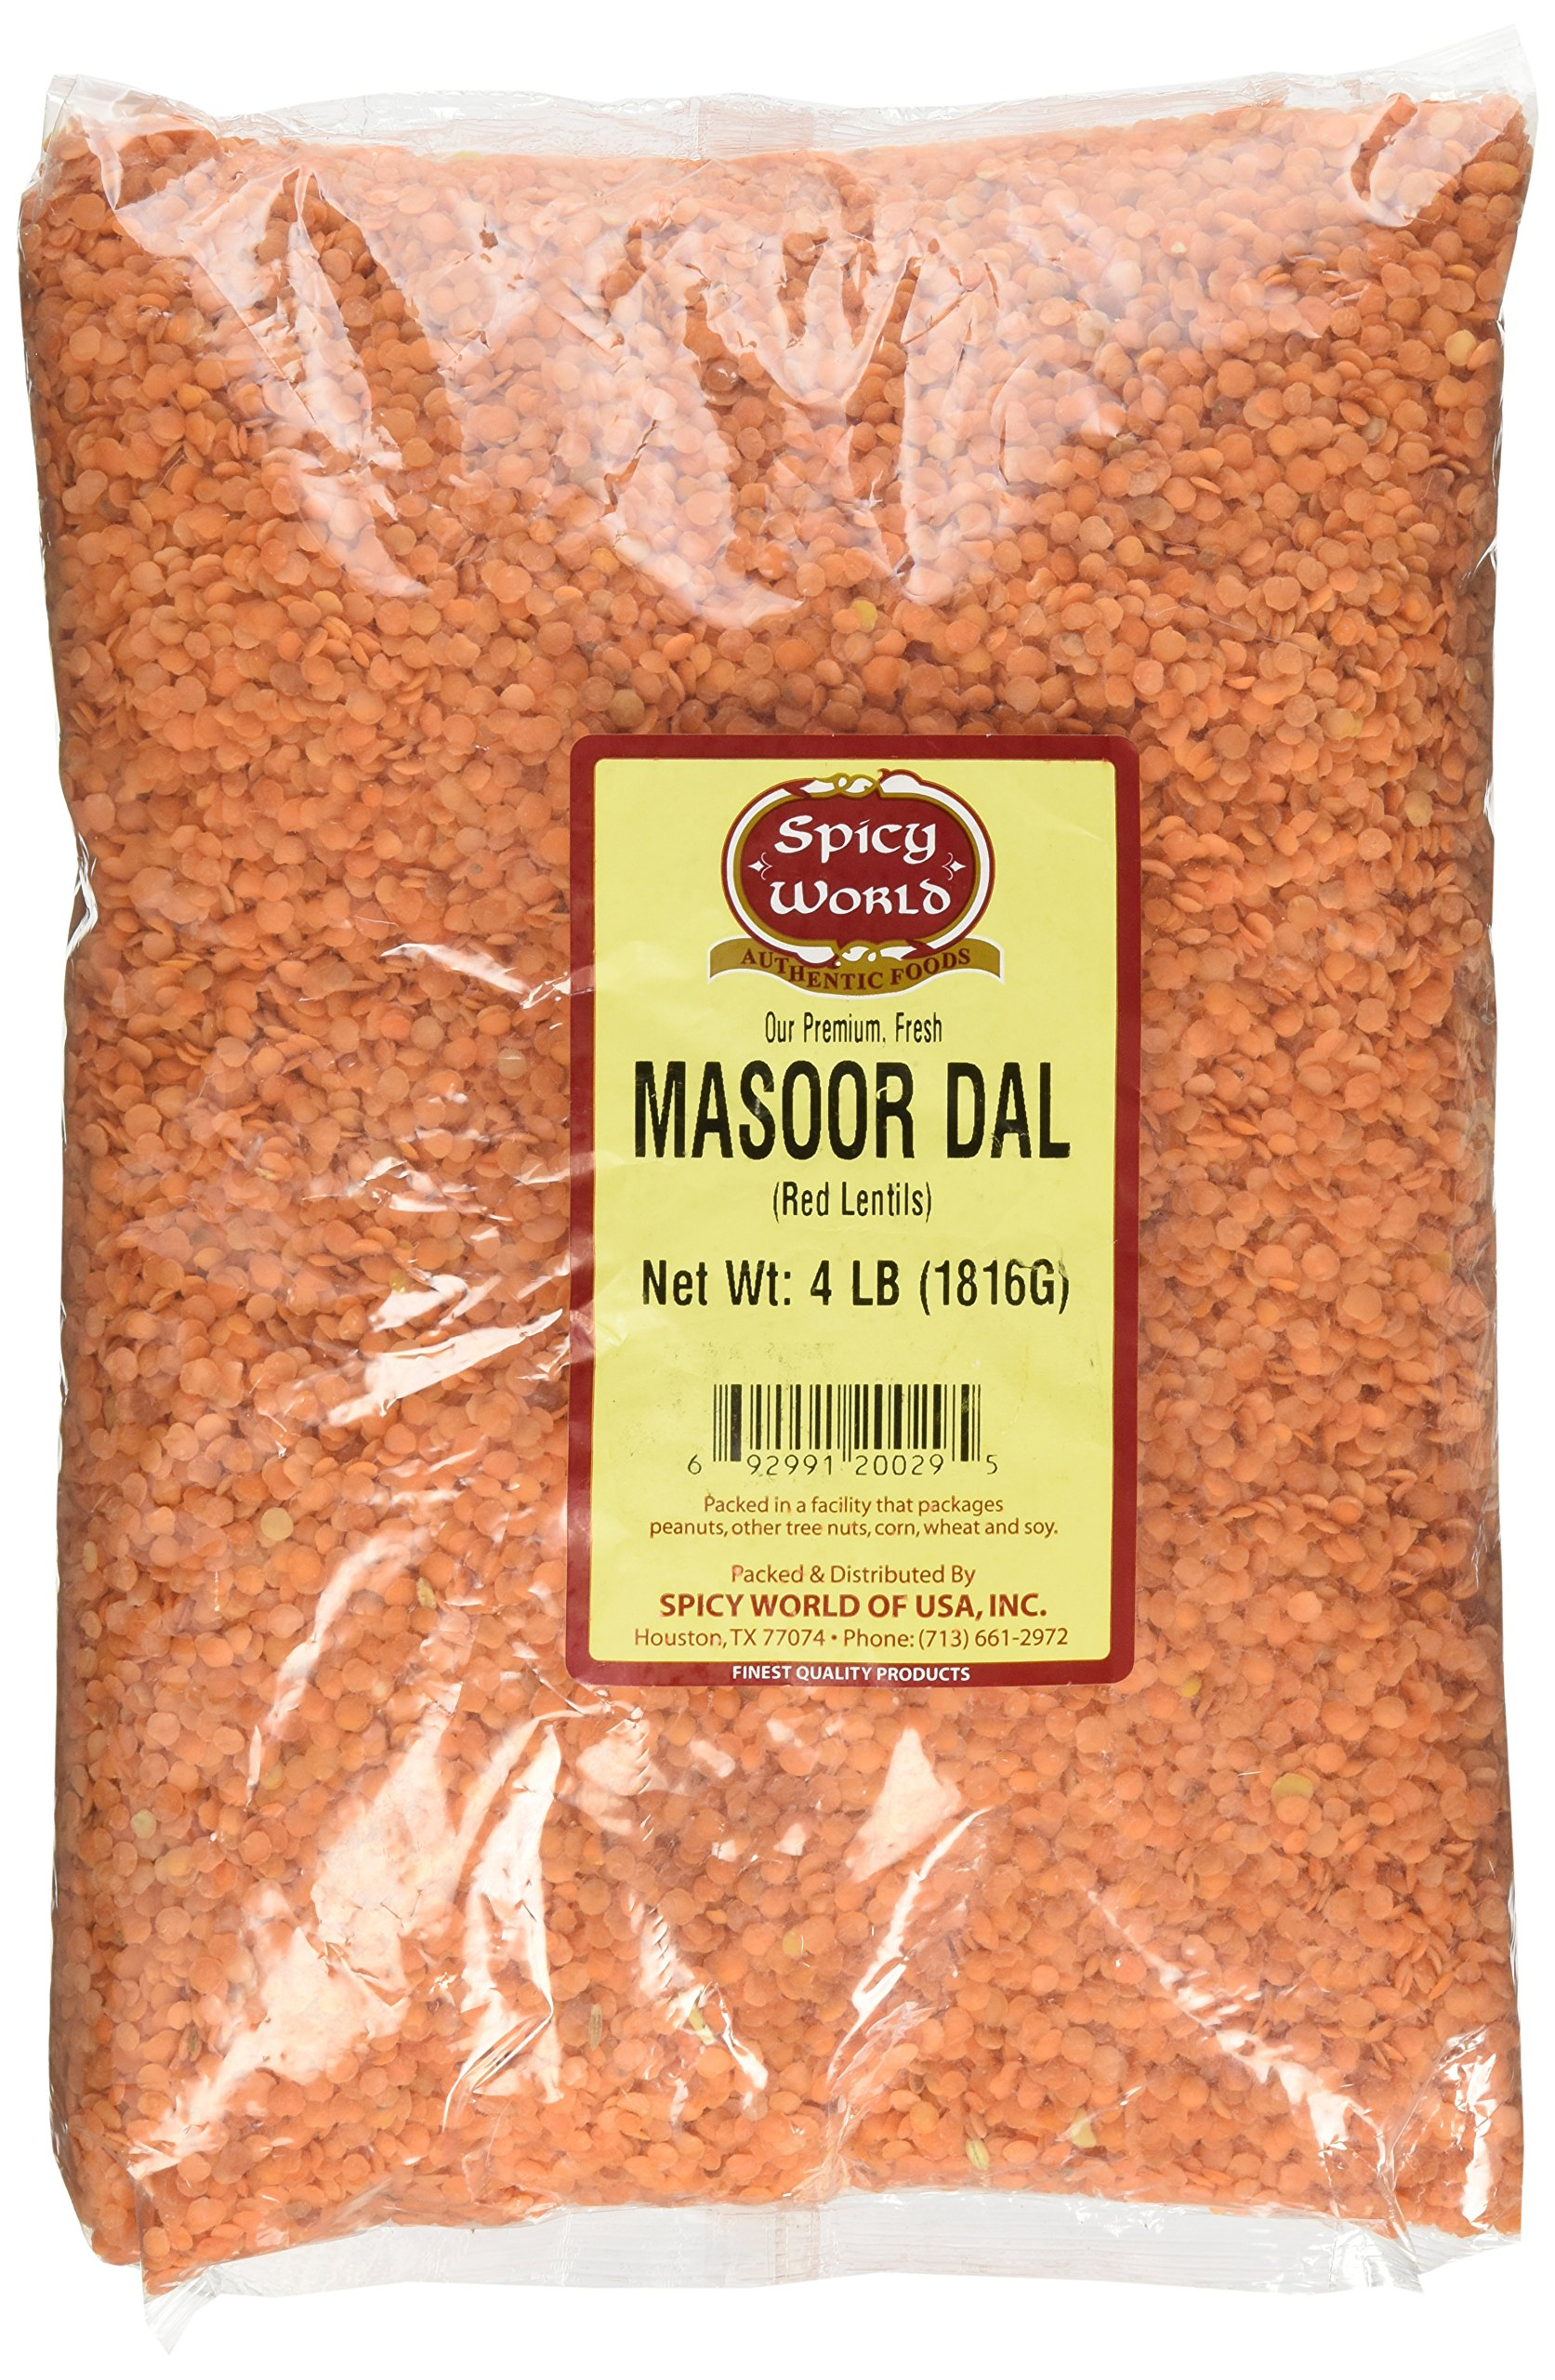 Spicy World Masoor Dal (Indian Red Lentils) 4 Pounds by Spicy World (Image #1)